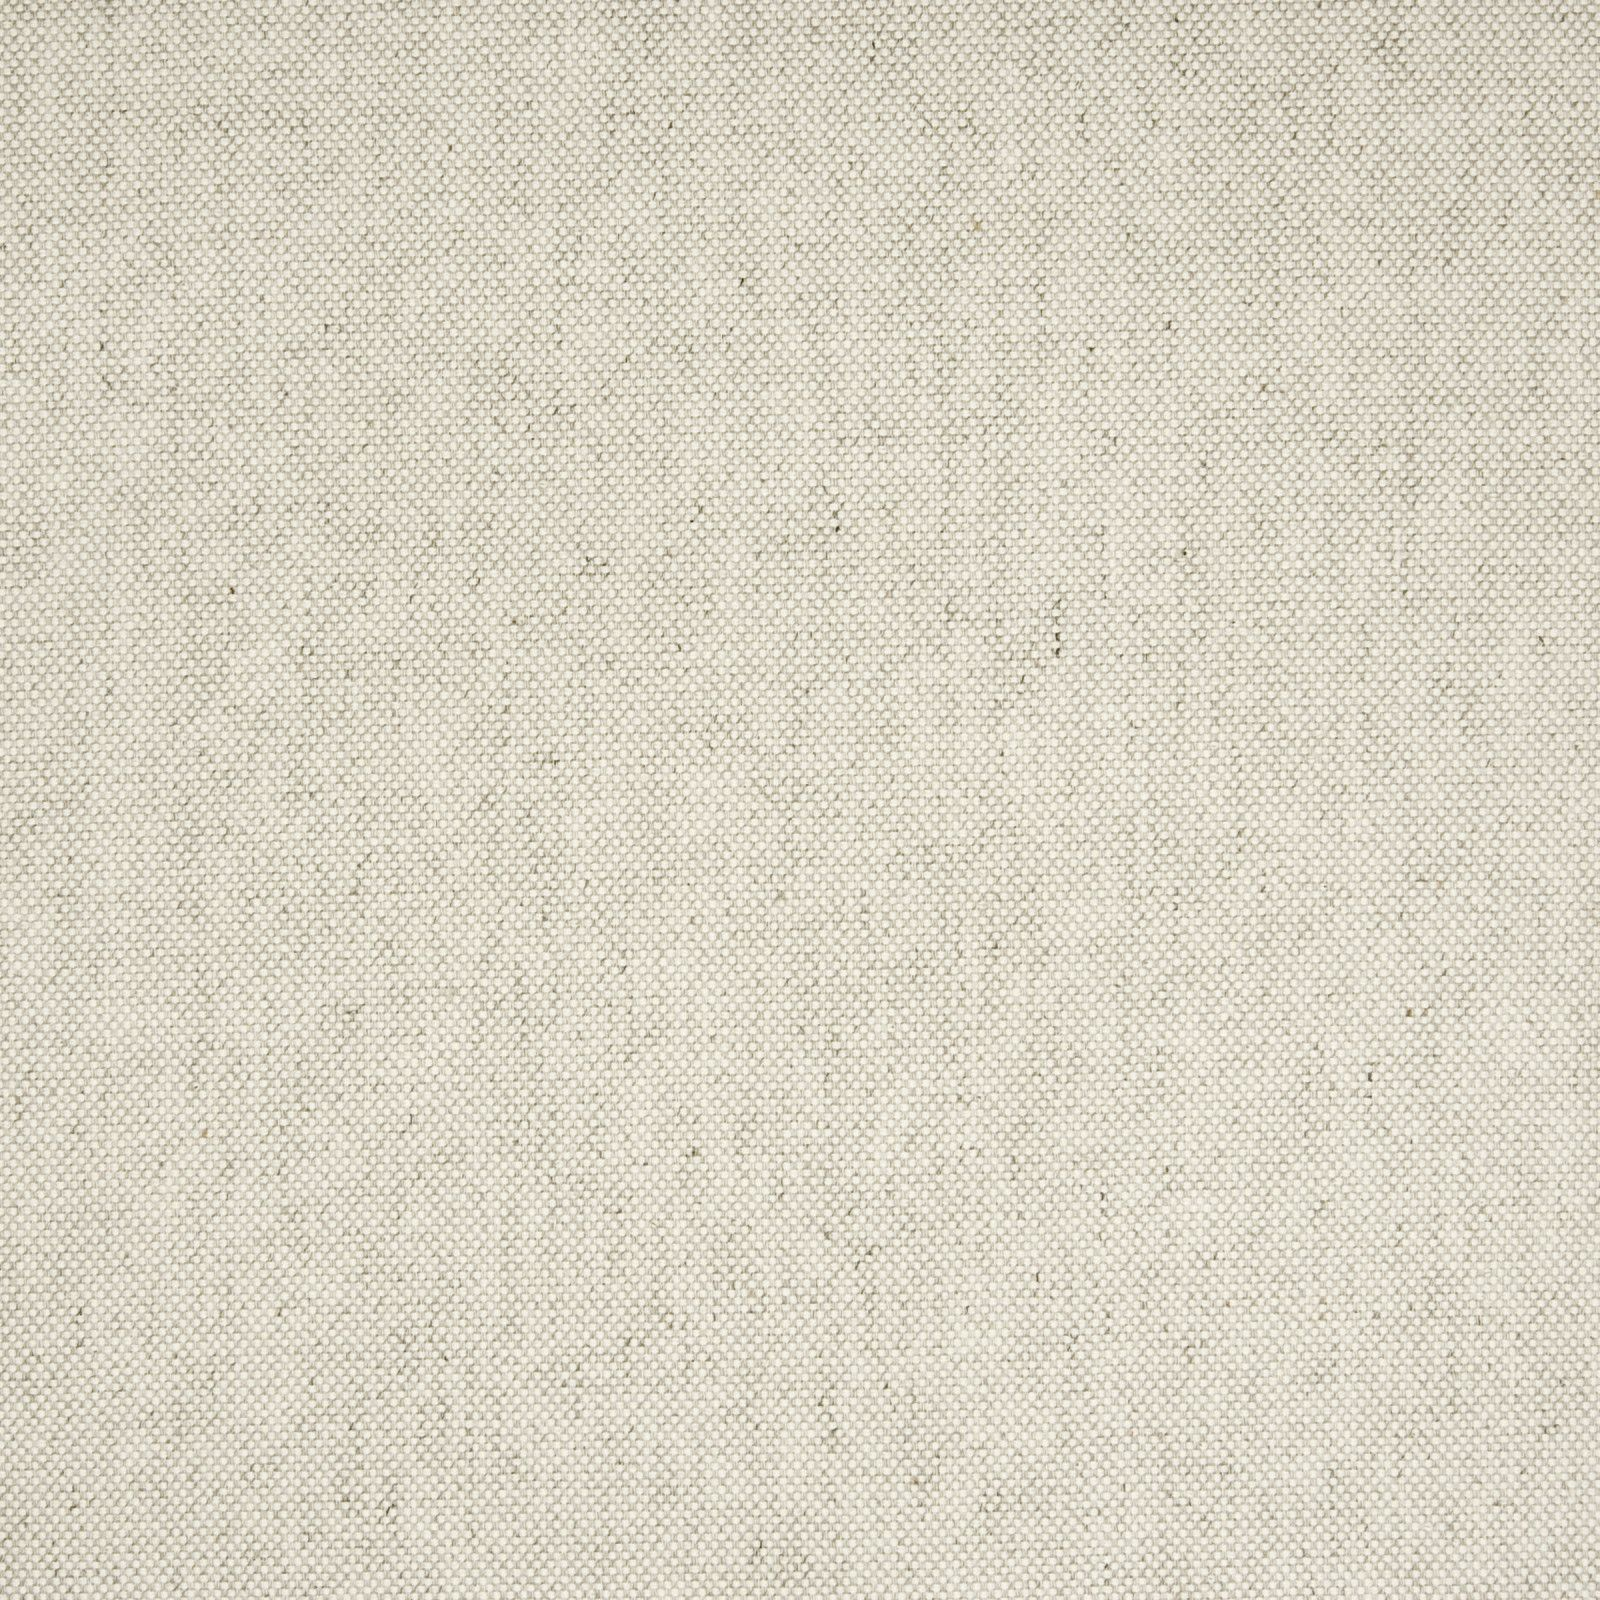 B1360 Scour Linen upholstery fabric, Upholstery fabric